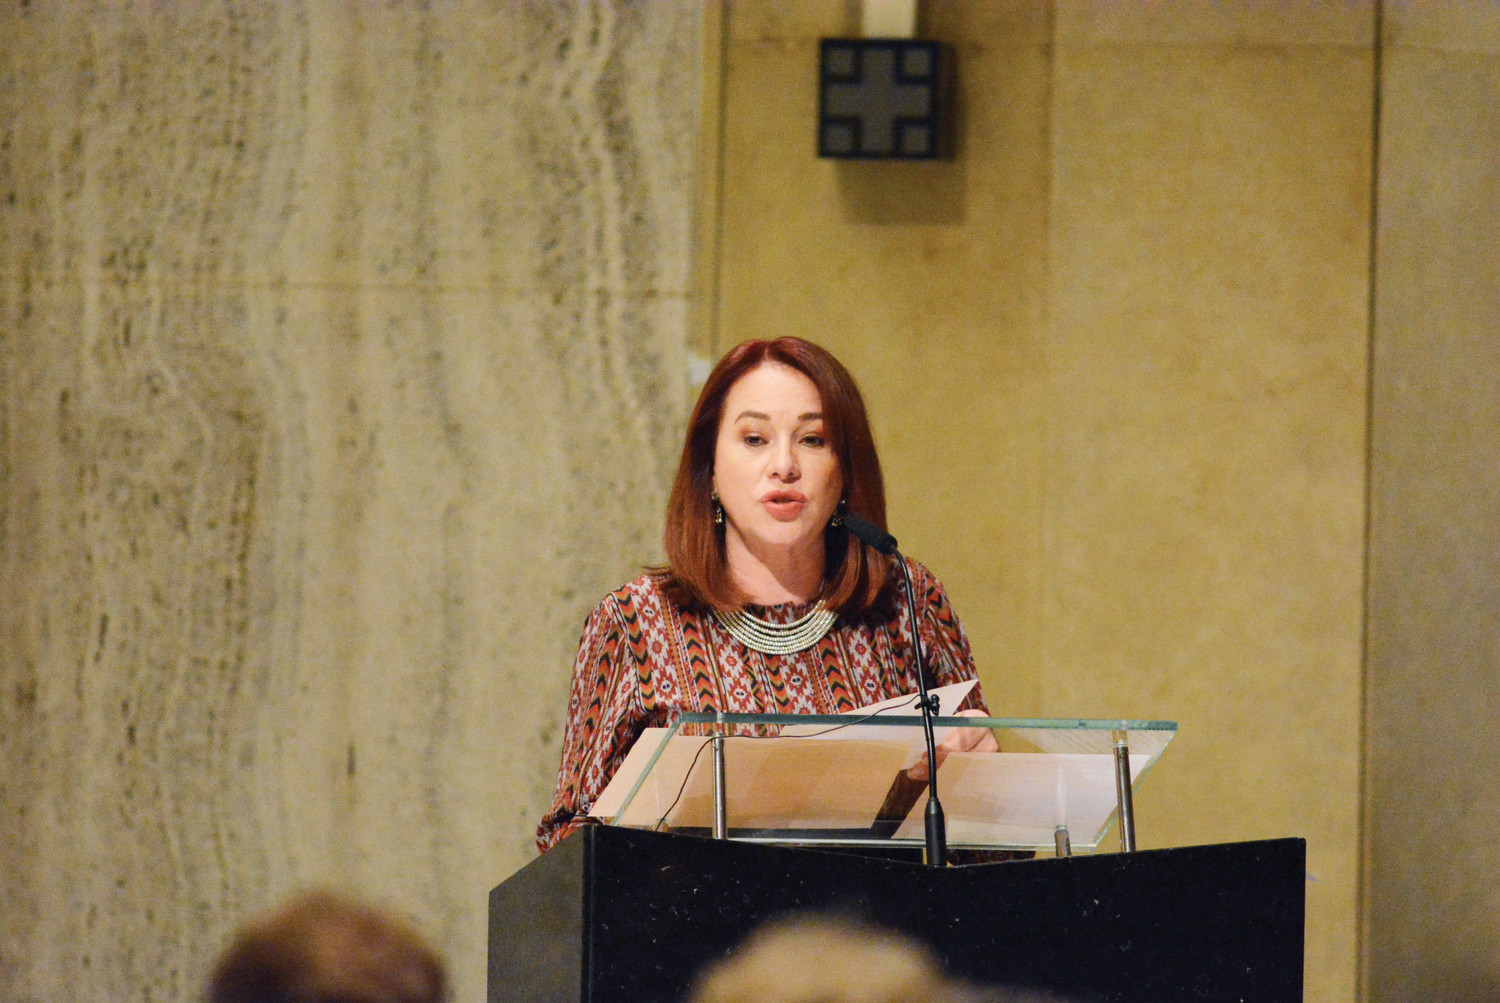 María Fernanda Espinosa Garcés of Ecuador, president of the 73rd Session of the General Assembly, delivers remarks at the prayer service. Known as the United Nations parish, Holy Family is located near the U.N. headquarters.